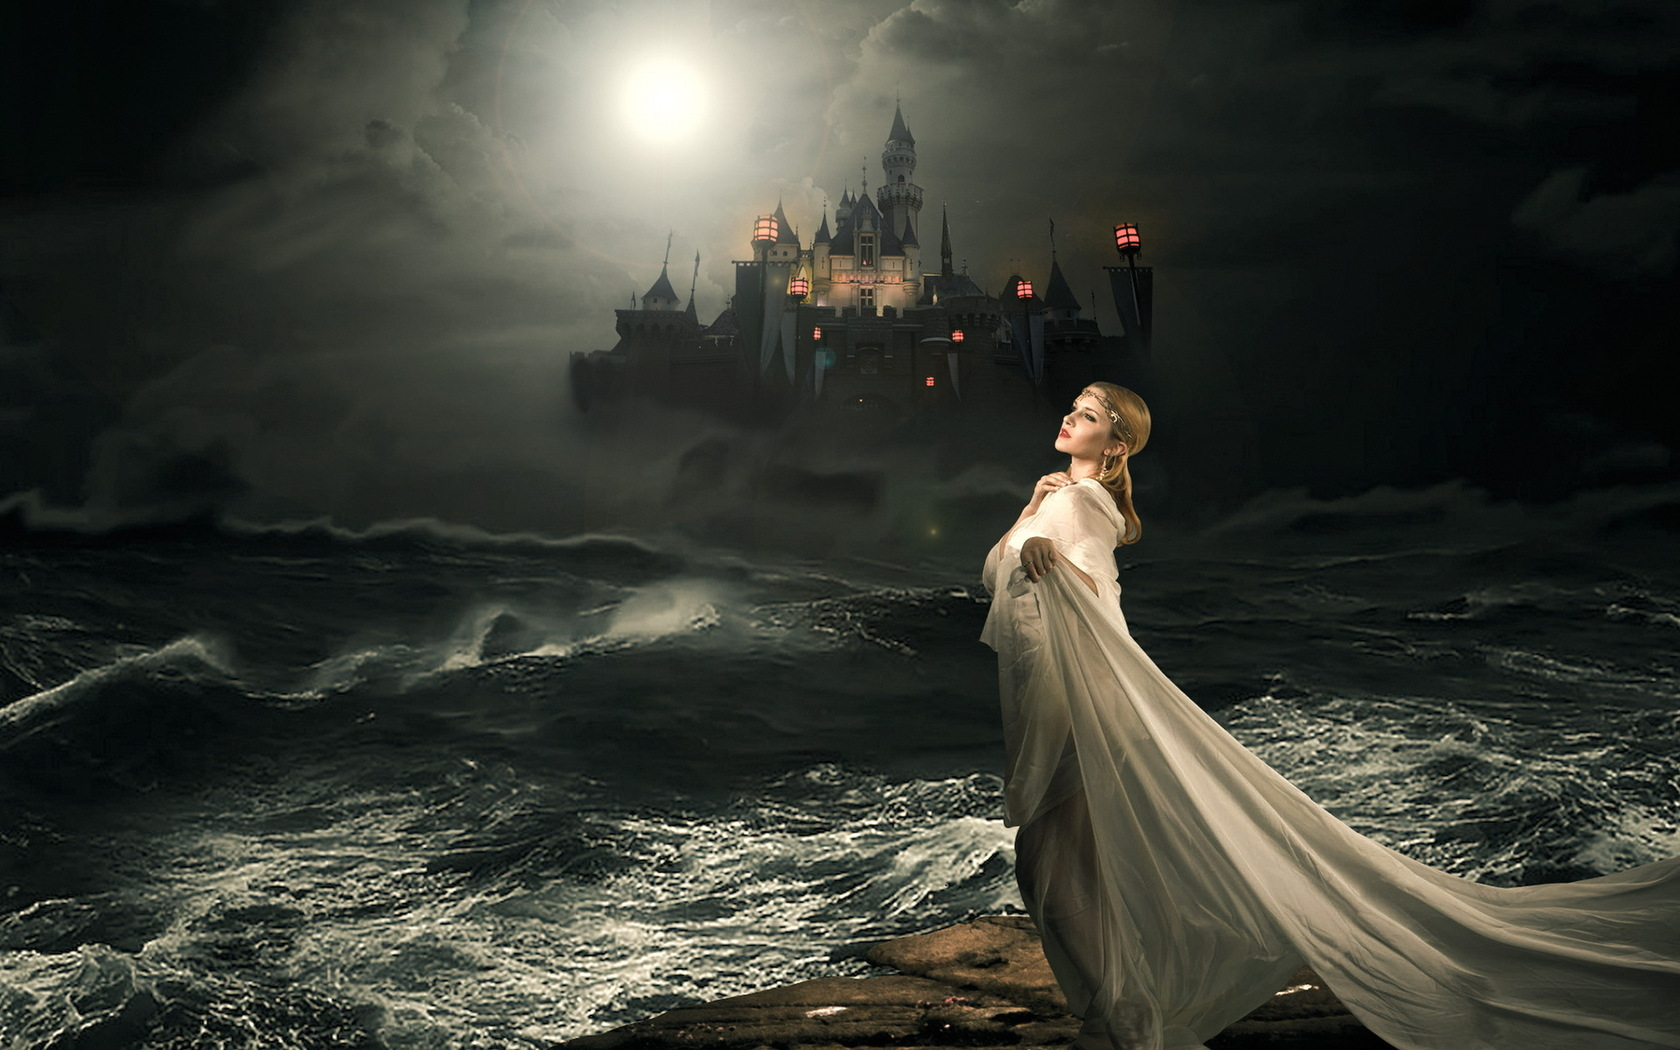 Dark - Gothic Castle Spooky Witch Ocean Mood Sadness Sad Sorrow Night ...: https://wall.alphacoders.com/big.php?i=302637